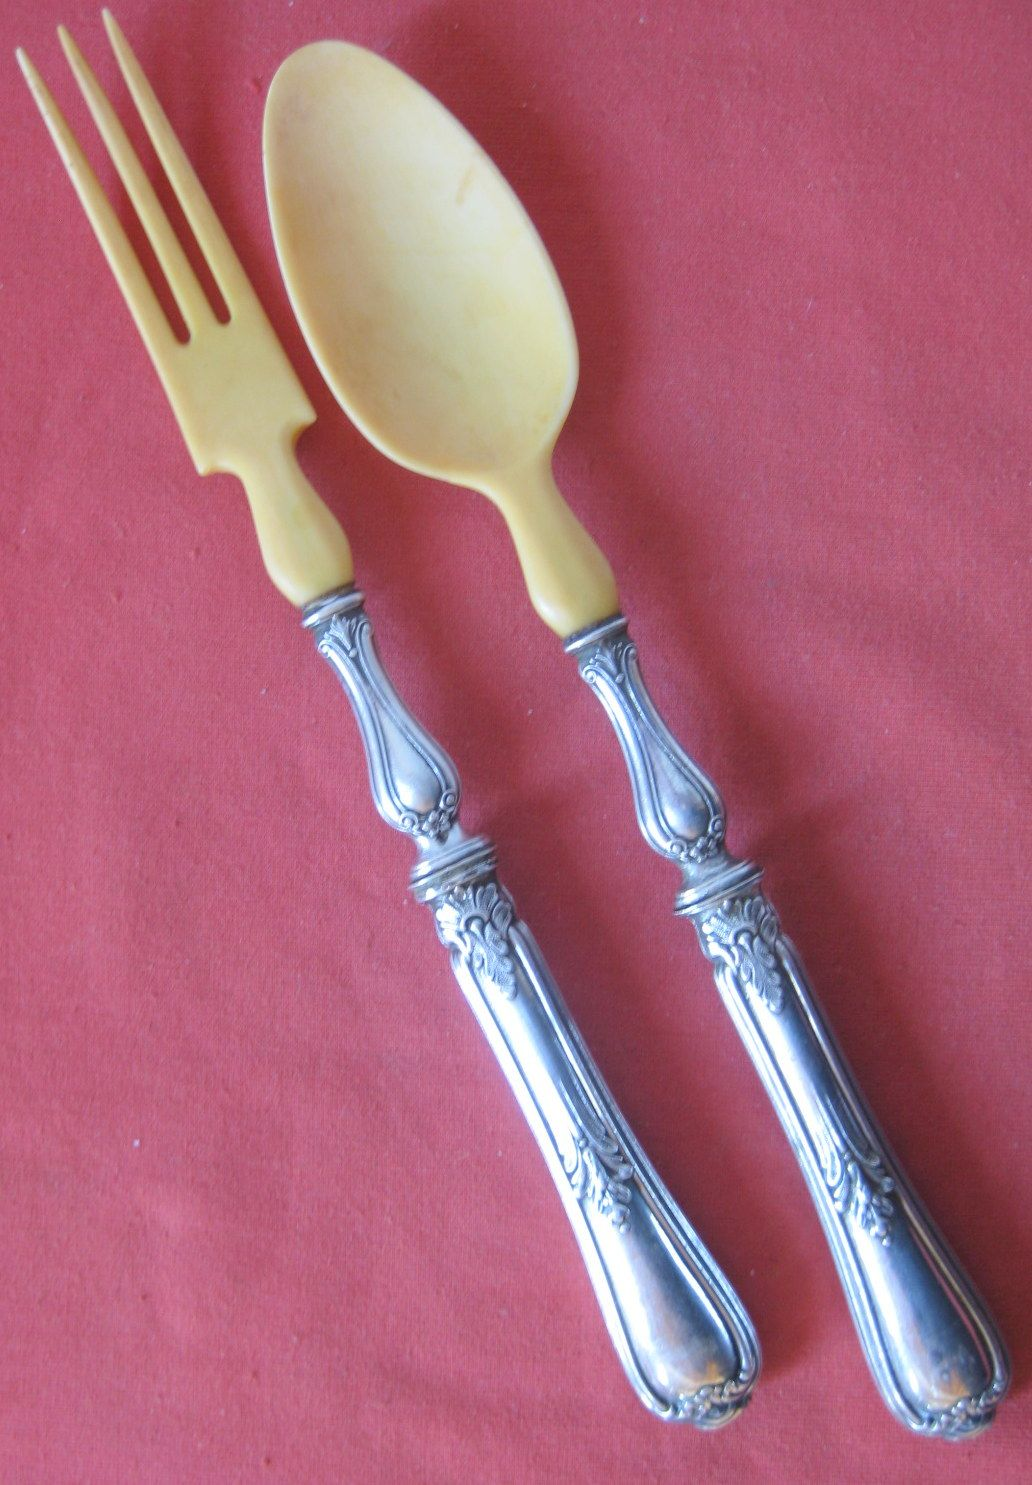 28 unique flatware pamela copeman 187 pamela s posh Unique flatware sets